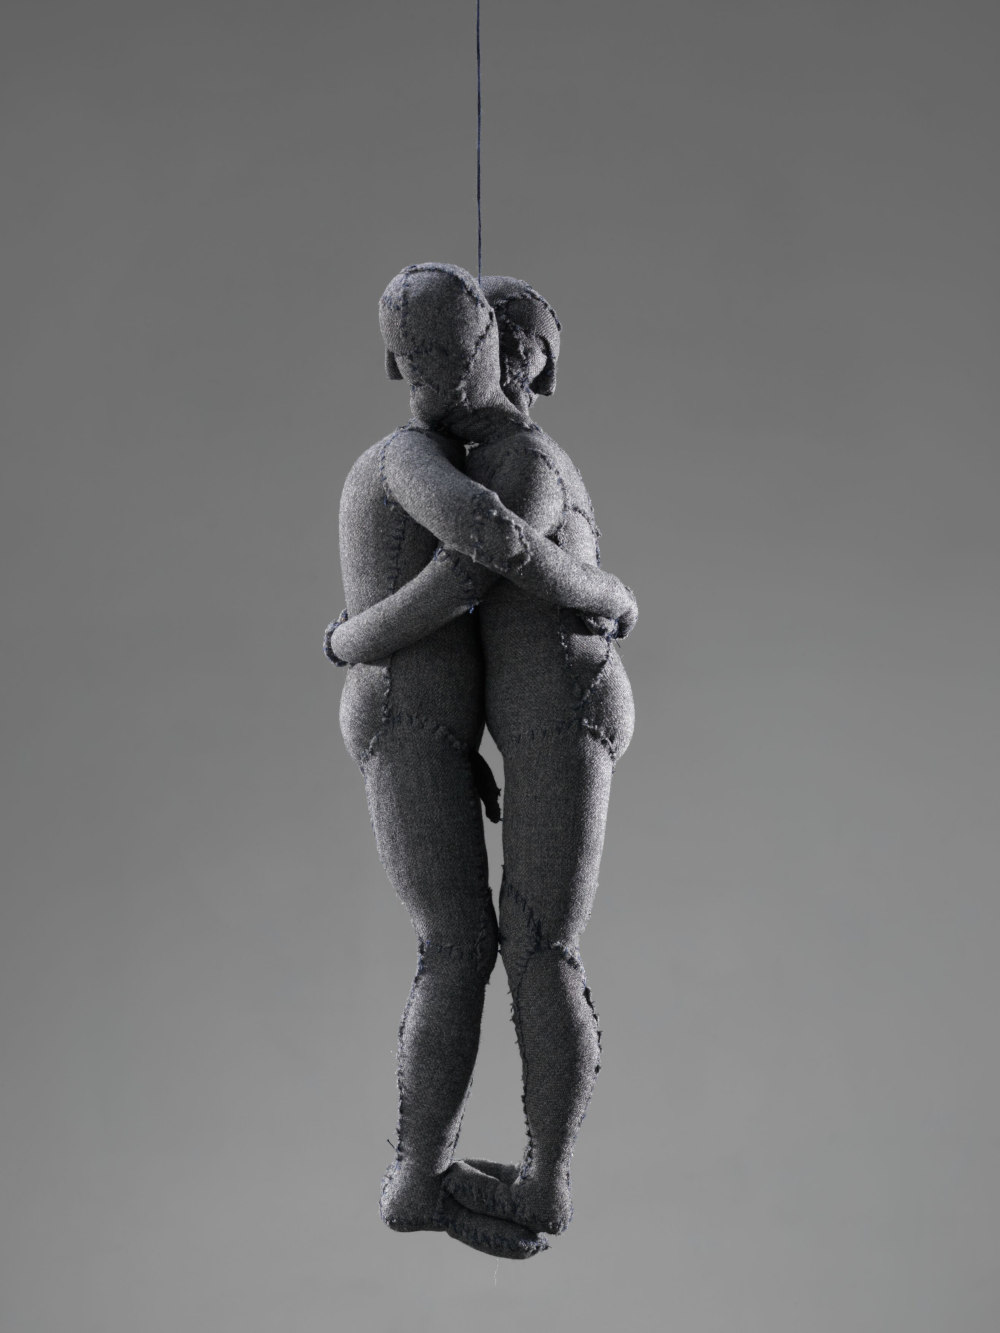 Louise Bourgeois, Couple, 2002. Fabric, hanging piece 43.2 x 17.8 x 12.7 cm / 17 x 7 x 5 in. Stainless steel, glass and wood vitrine: 193 x 60.9 x 60.9 cm / 76 x 24 x 24 in © The Easton Foundation / 2019, ProLitteris, Zurich. Courtesy the Foundation and Hauser & Wirth. Photo: Christopher Burke